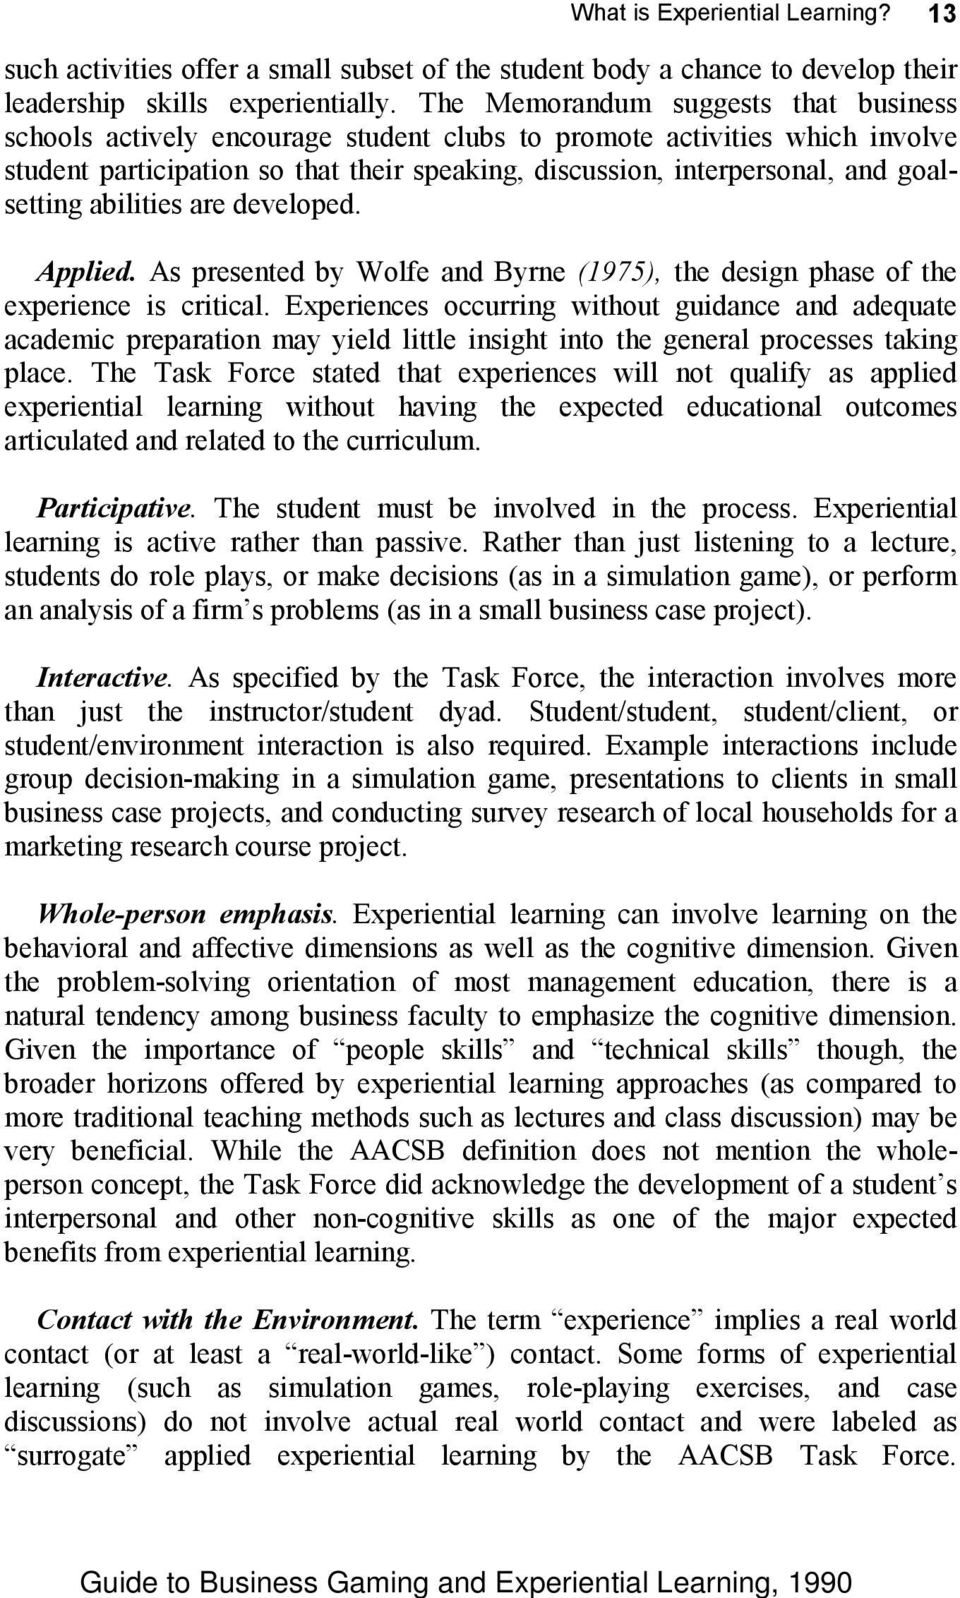 goalsetting abilities are developed. Applied. As presented by Wolfe and Byrne (1975), the design phase of the experience is critical.